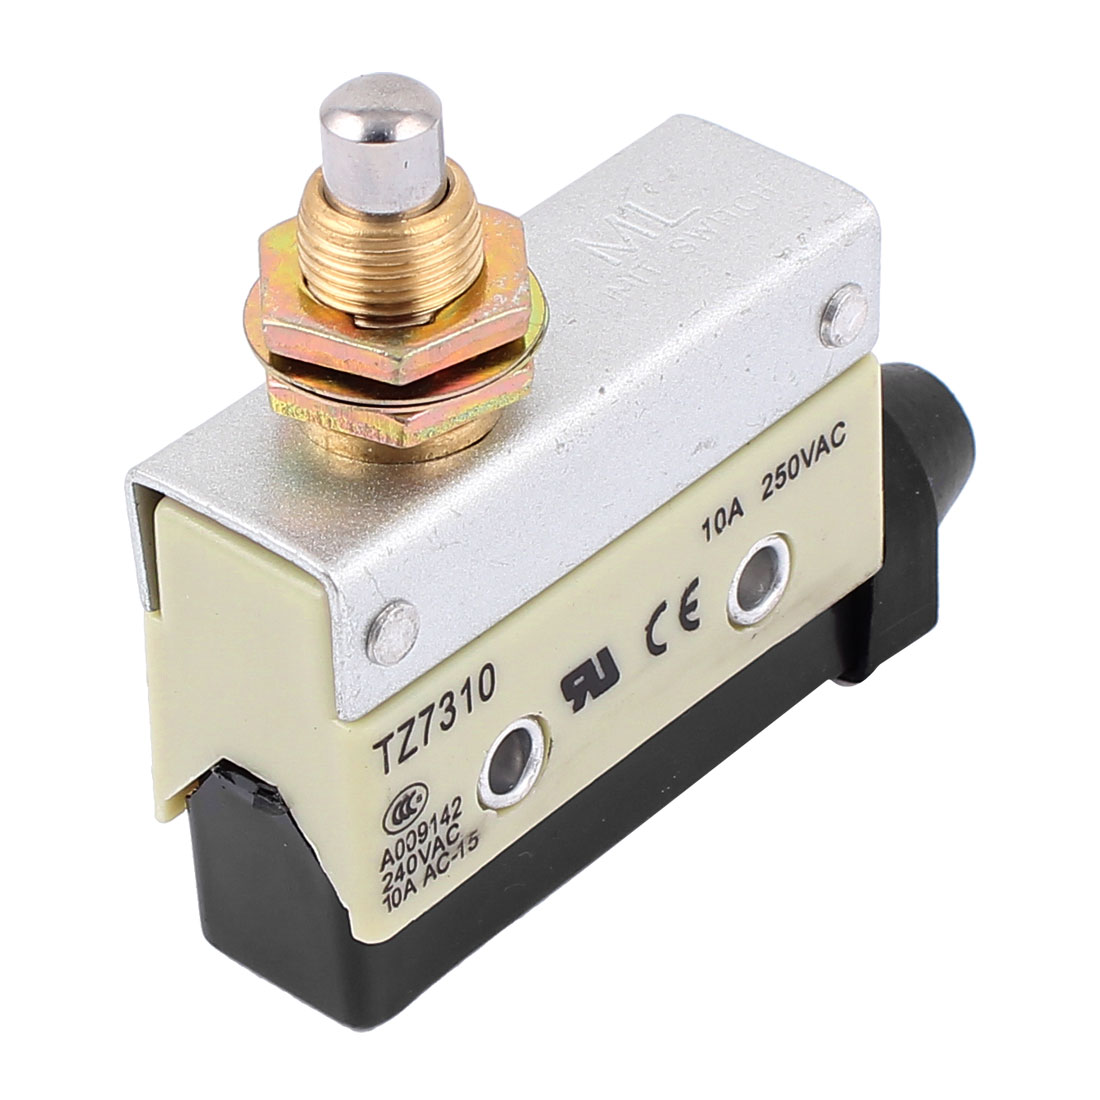 TZ7310 AC 250V 10A SPDT Plunger Panel Mount Momentary Micro Limit Switch